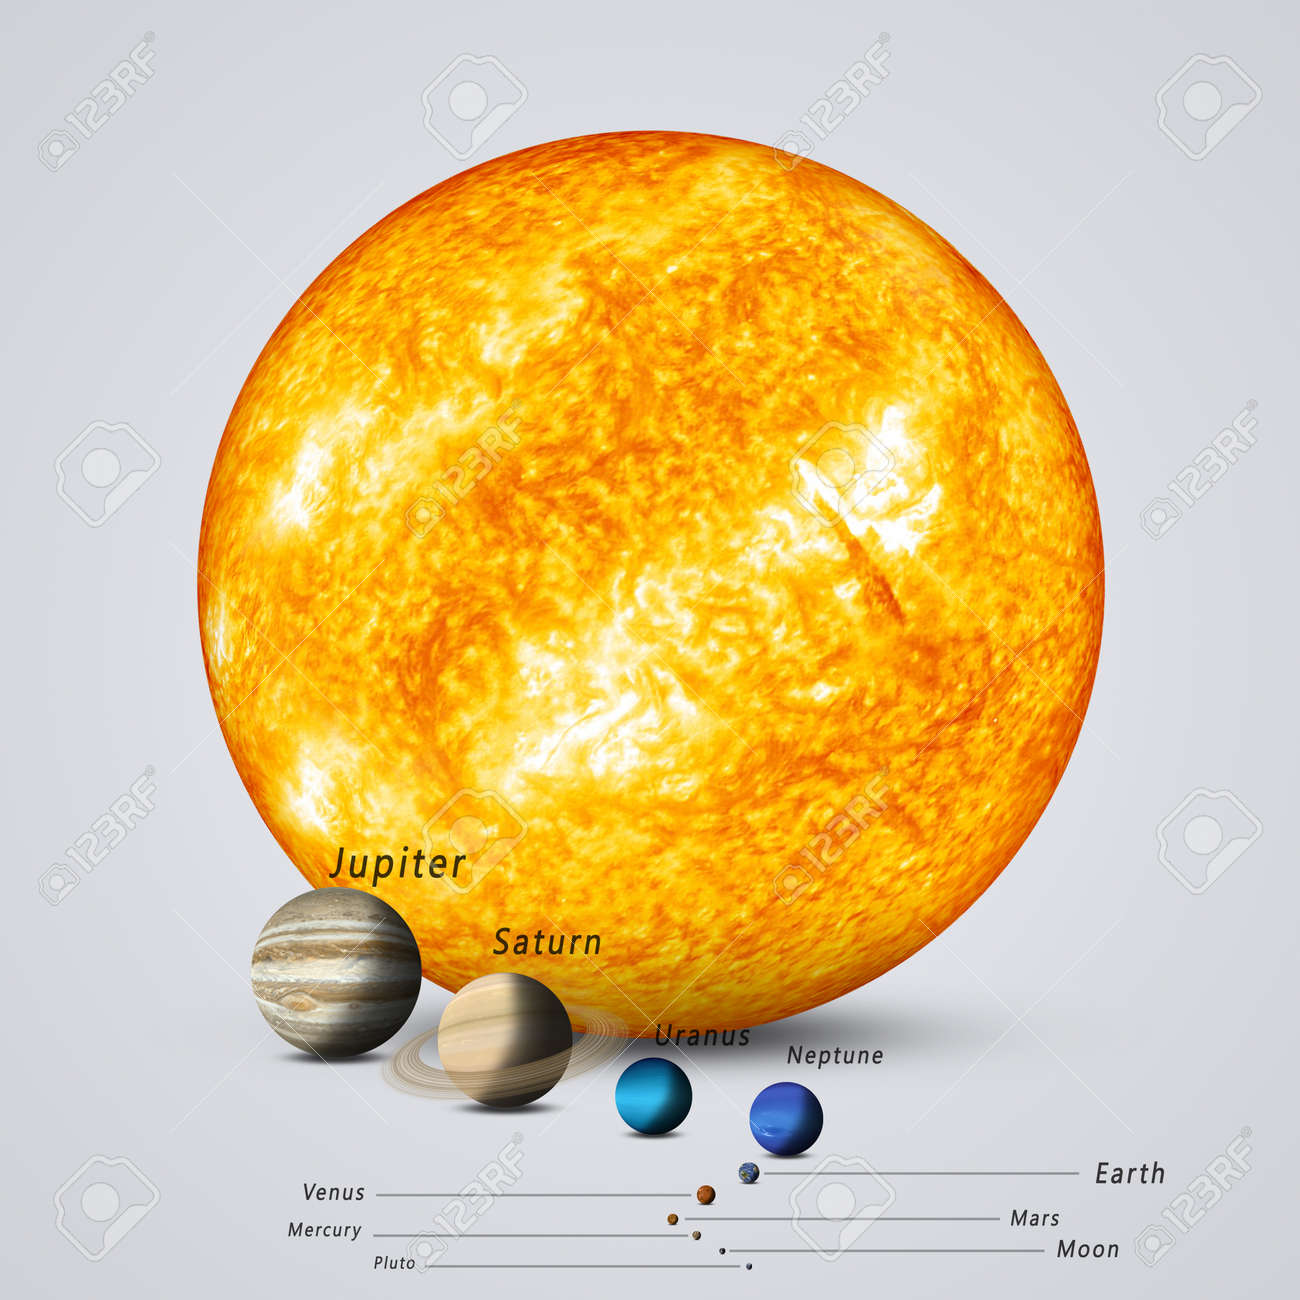 sun and solar system planets full size comparison - 57642163